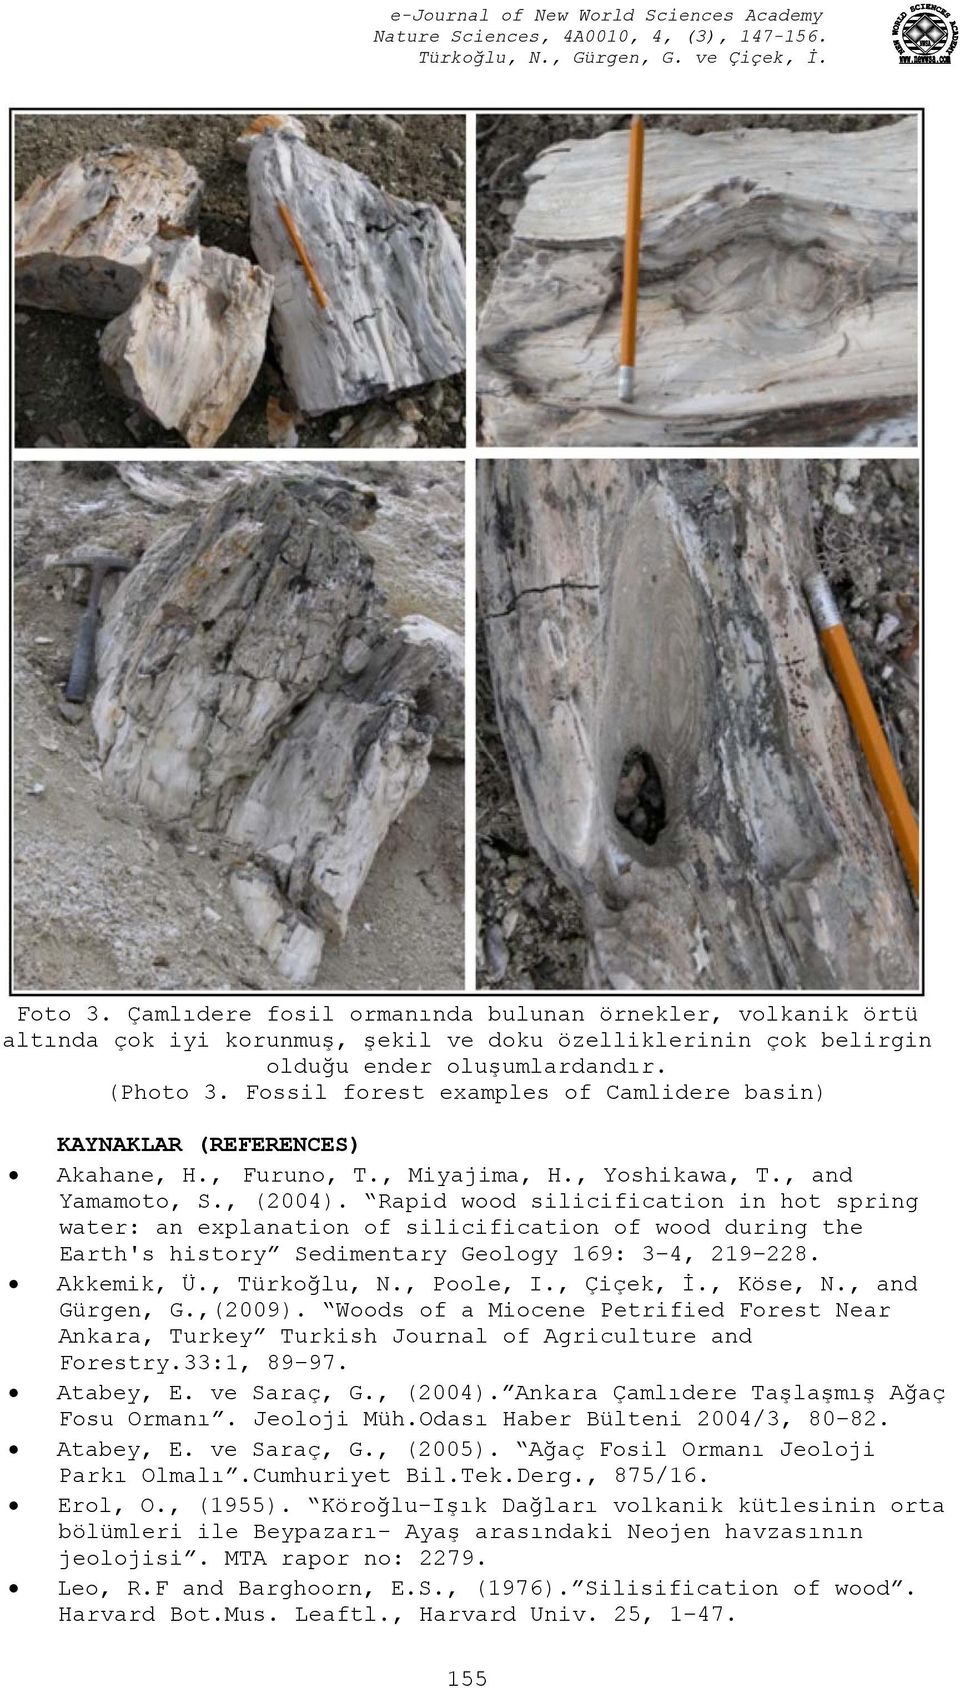 Rapid wood silicification in hot spring water: an explanation of silicification of wood during the Earth's history Sedimentary Geology 169: 3 4, 219 228. Akkemik, Ü., Türkoğlu, N., Poole, I.